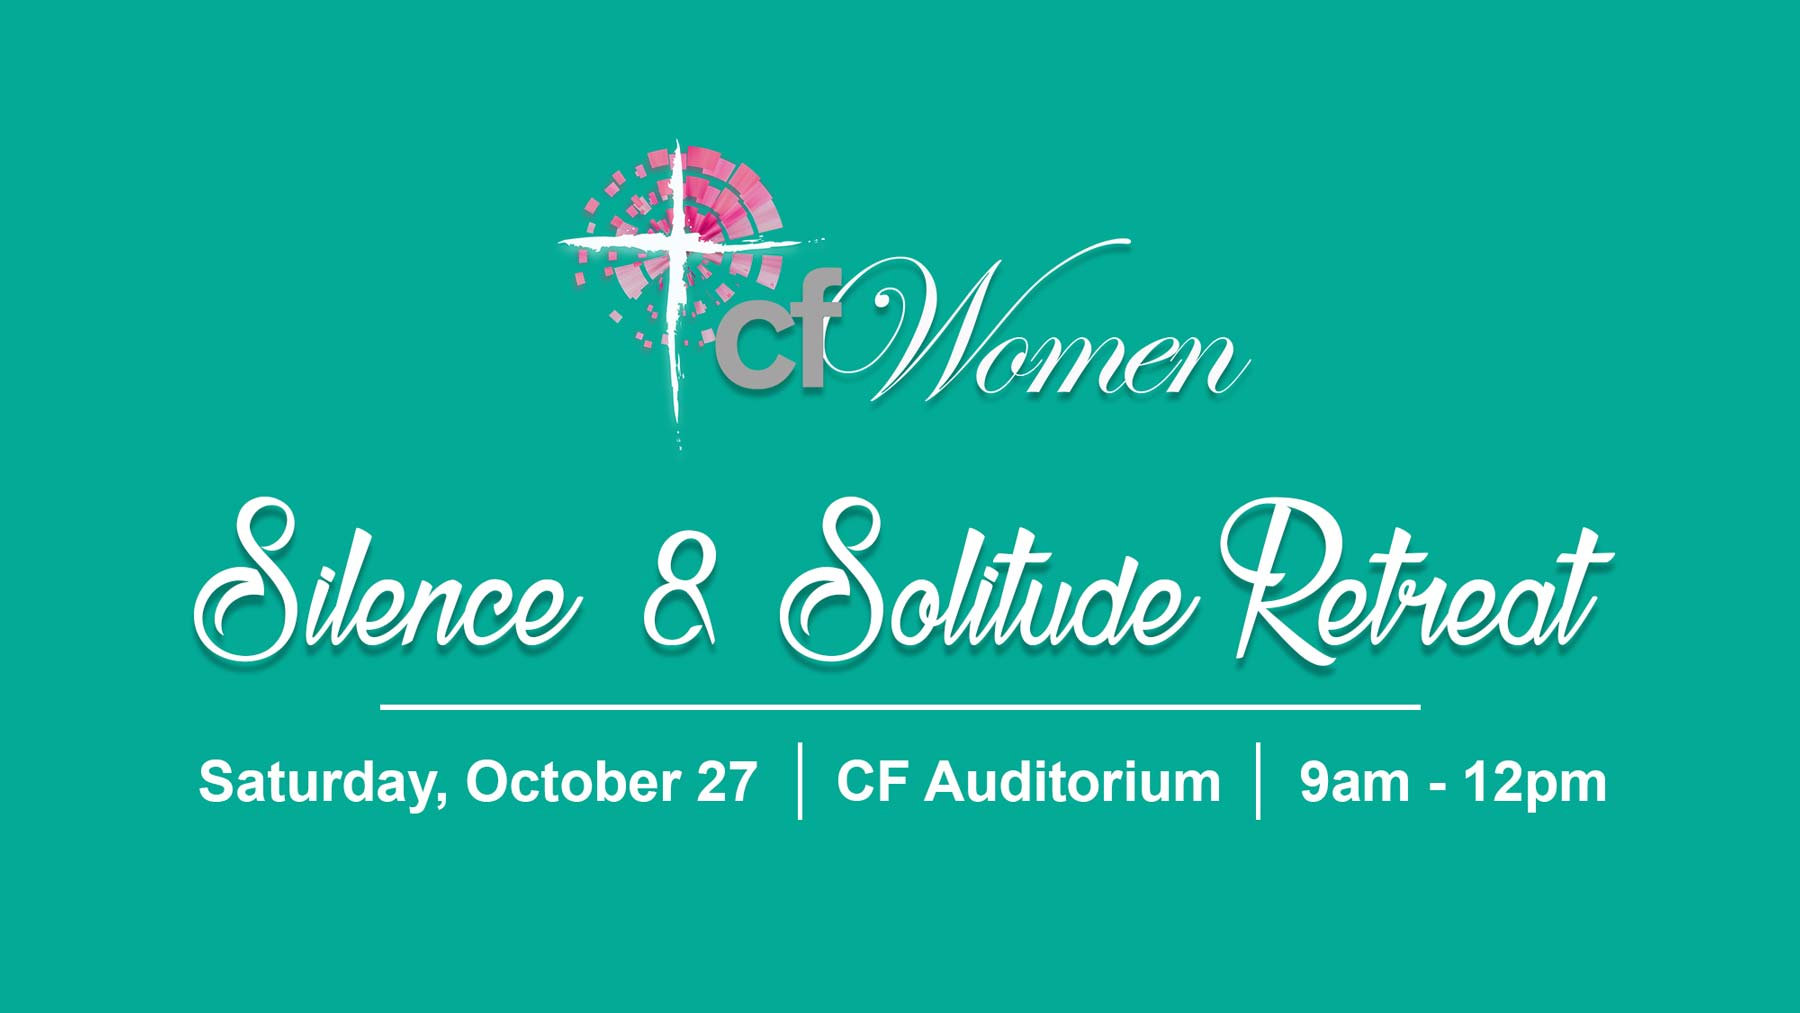 Christian Fellowship Church is having a Women's Silence and Solitude Morning Retreat Saturday, October 27 in Columbia Missouri